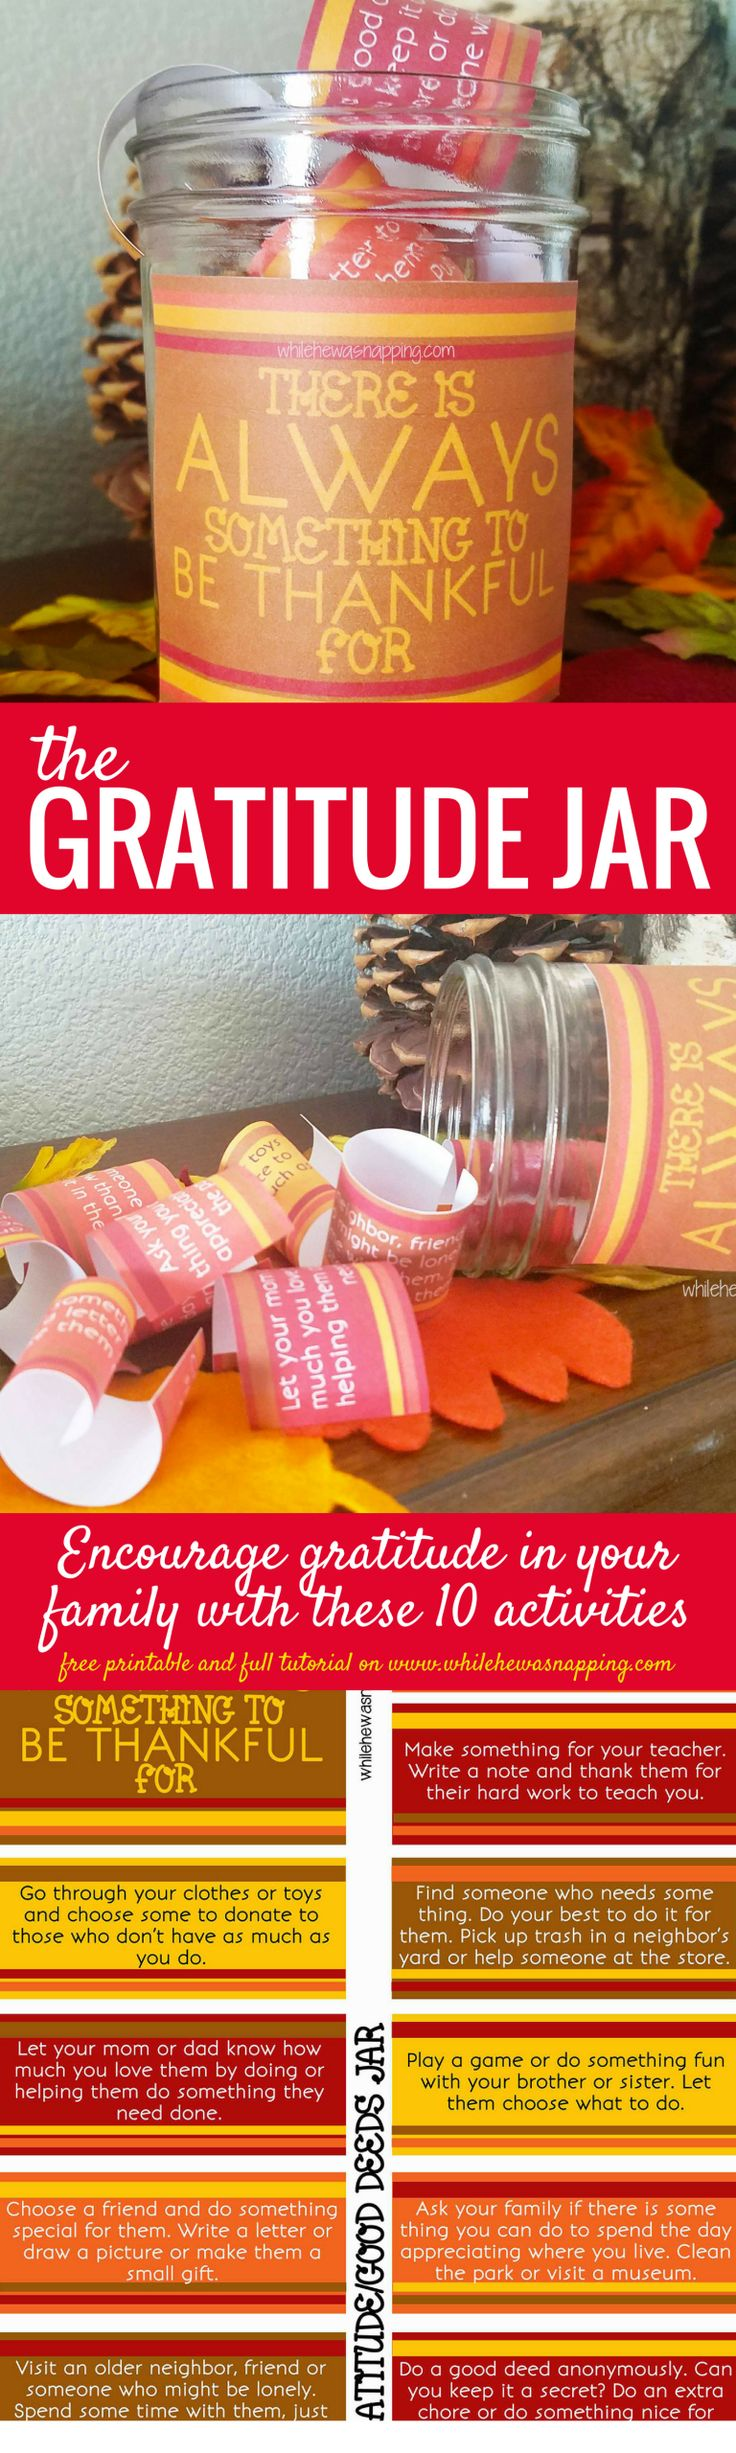 The Gratitude Jar encourages service and gratitude in your family with 10 fun activities that focus on helping others and saying thank you